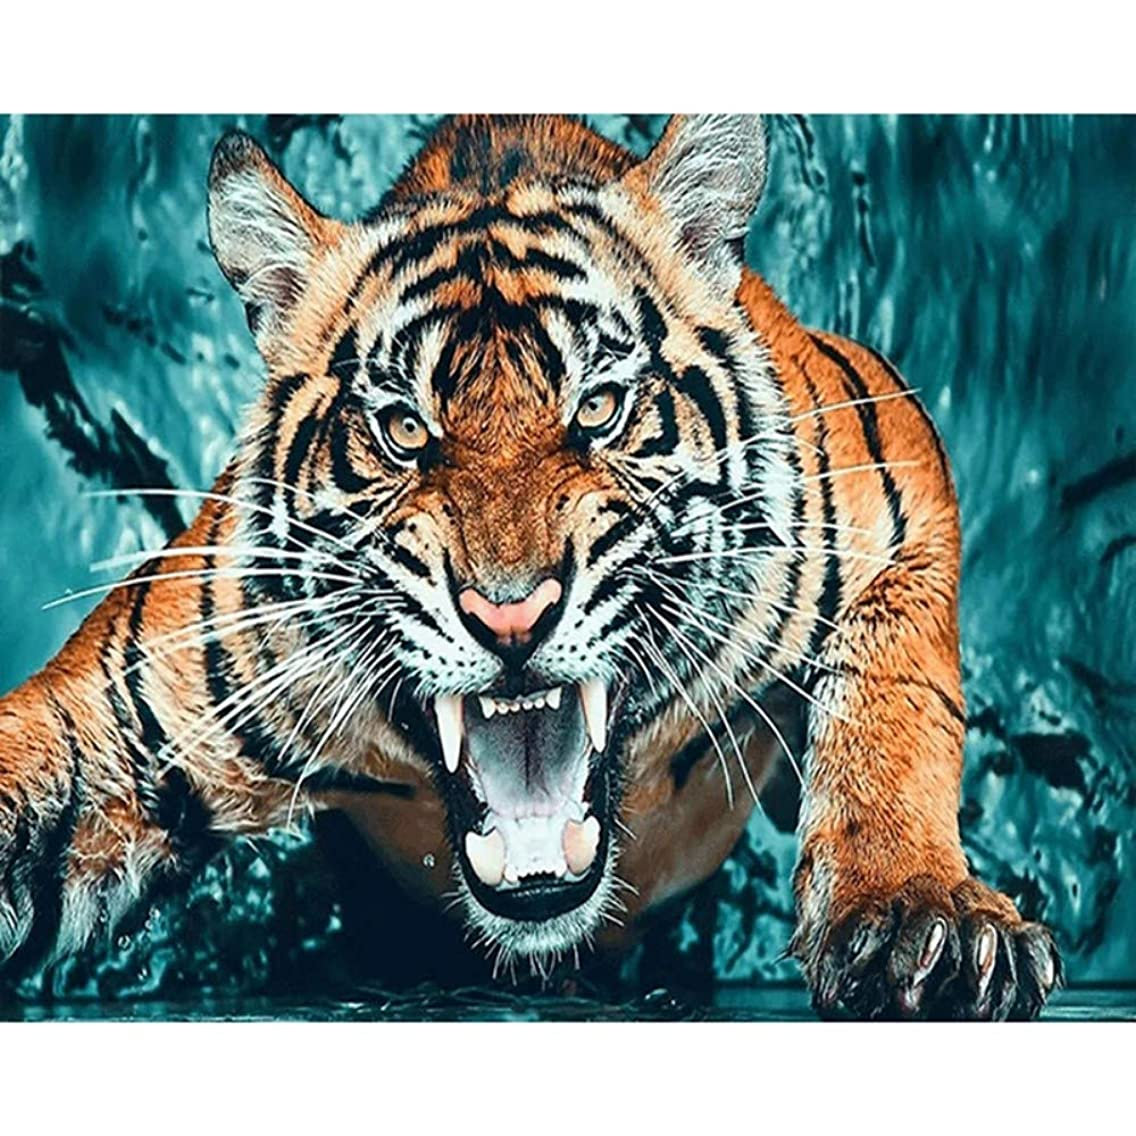 HYDWX Paint by Numbers for Senior Junior Beginner Level Painting by Numbers Set Tiger with Brushes Paints and Canvas Home Decor 16X20 Inch